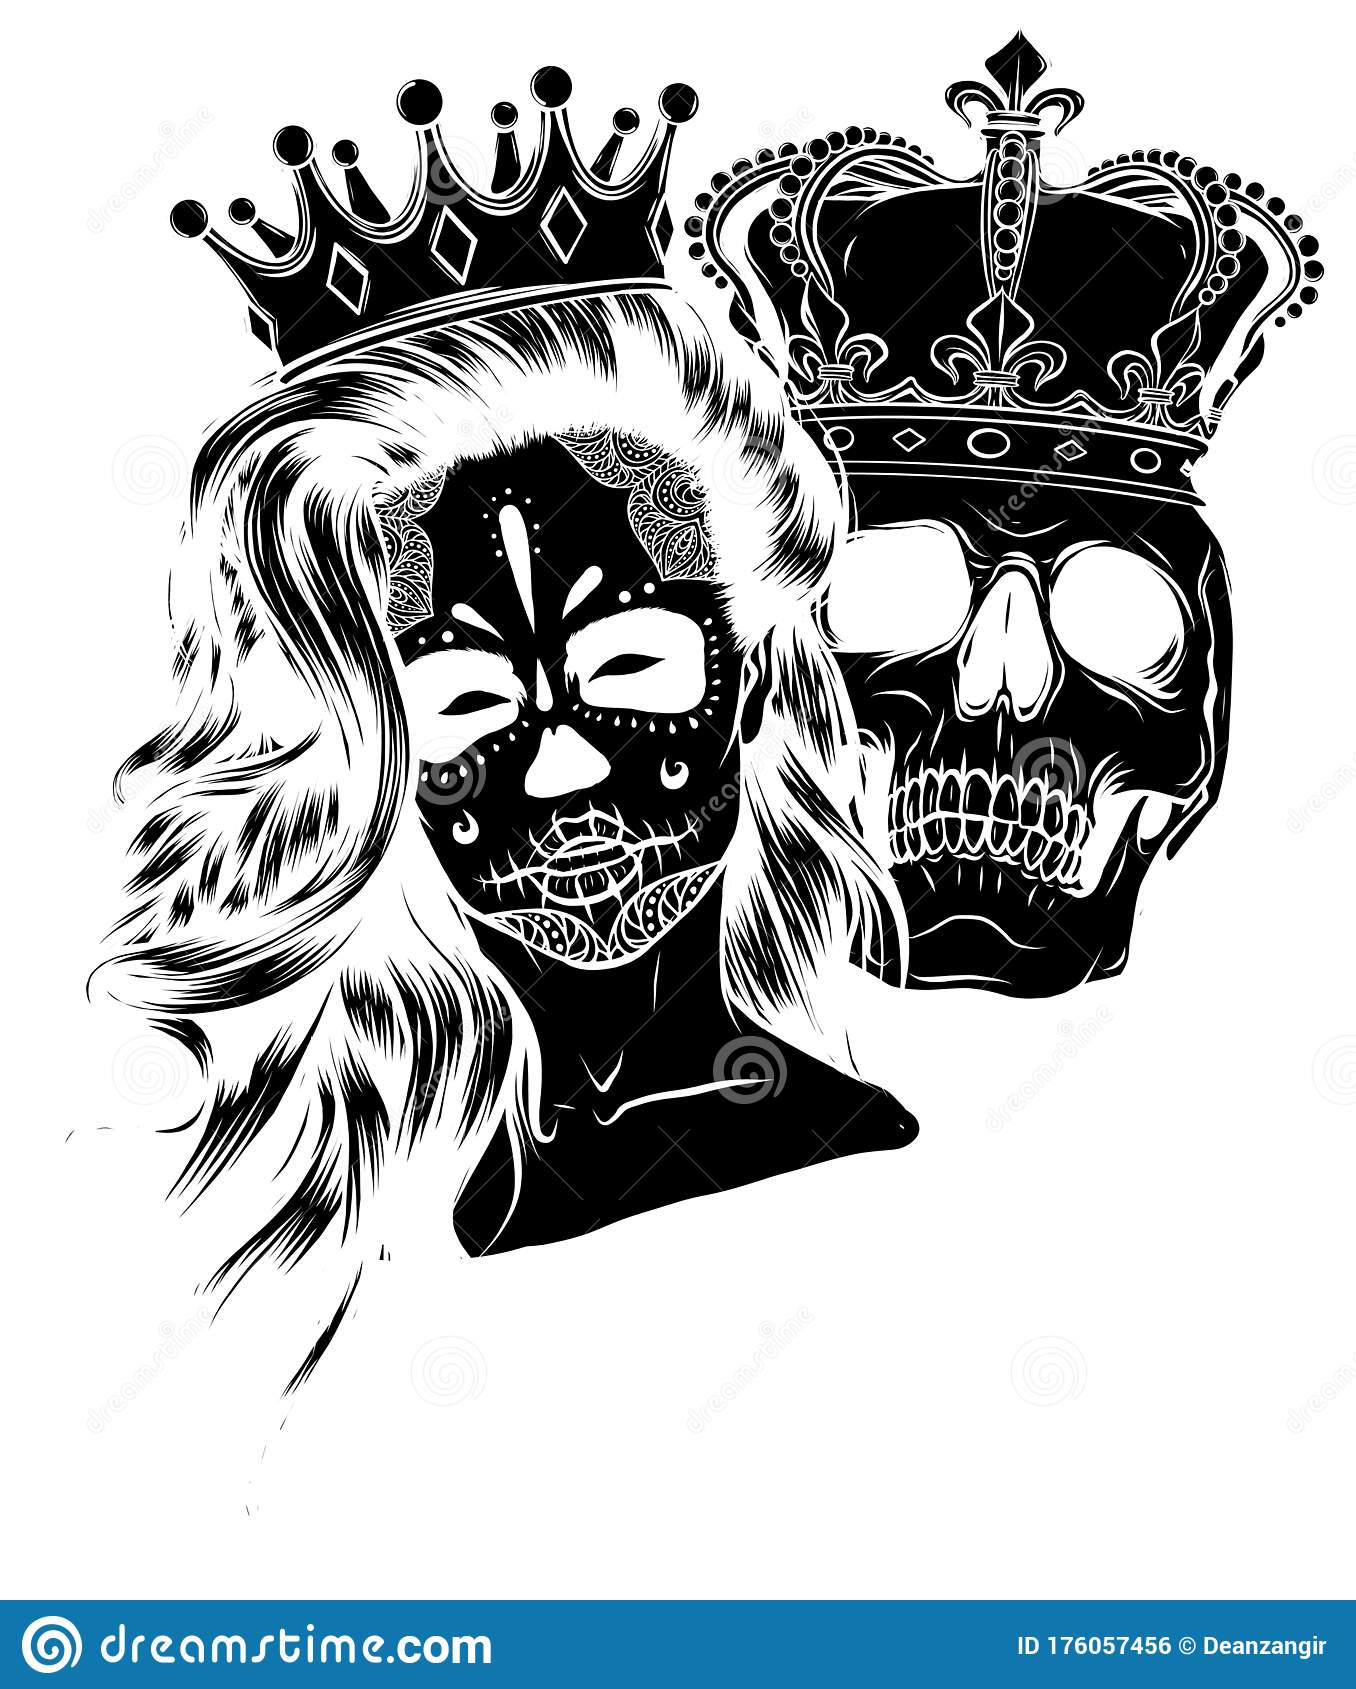 King And Queen Drawings : queen, drawings, Skull, Queen, Stock, Illustrations, Illustrations,, Vectors, Clipart, Dreamstime